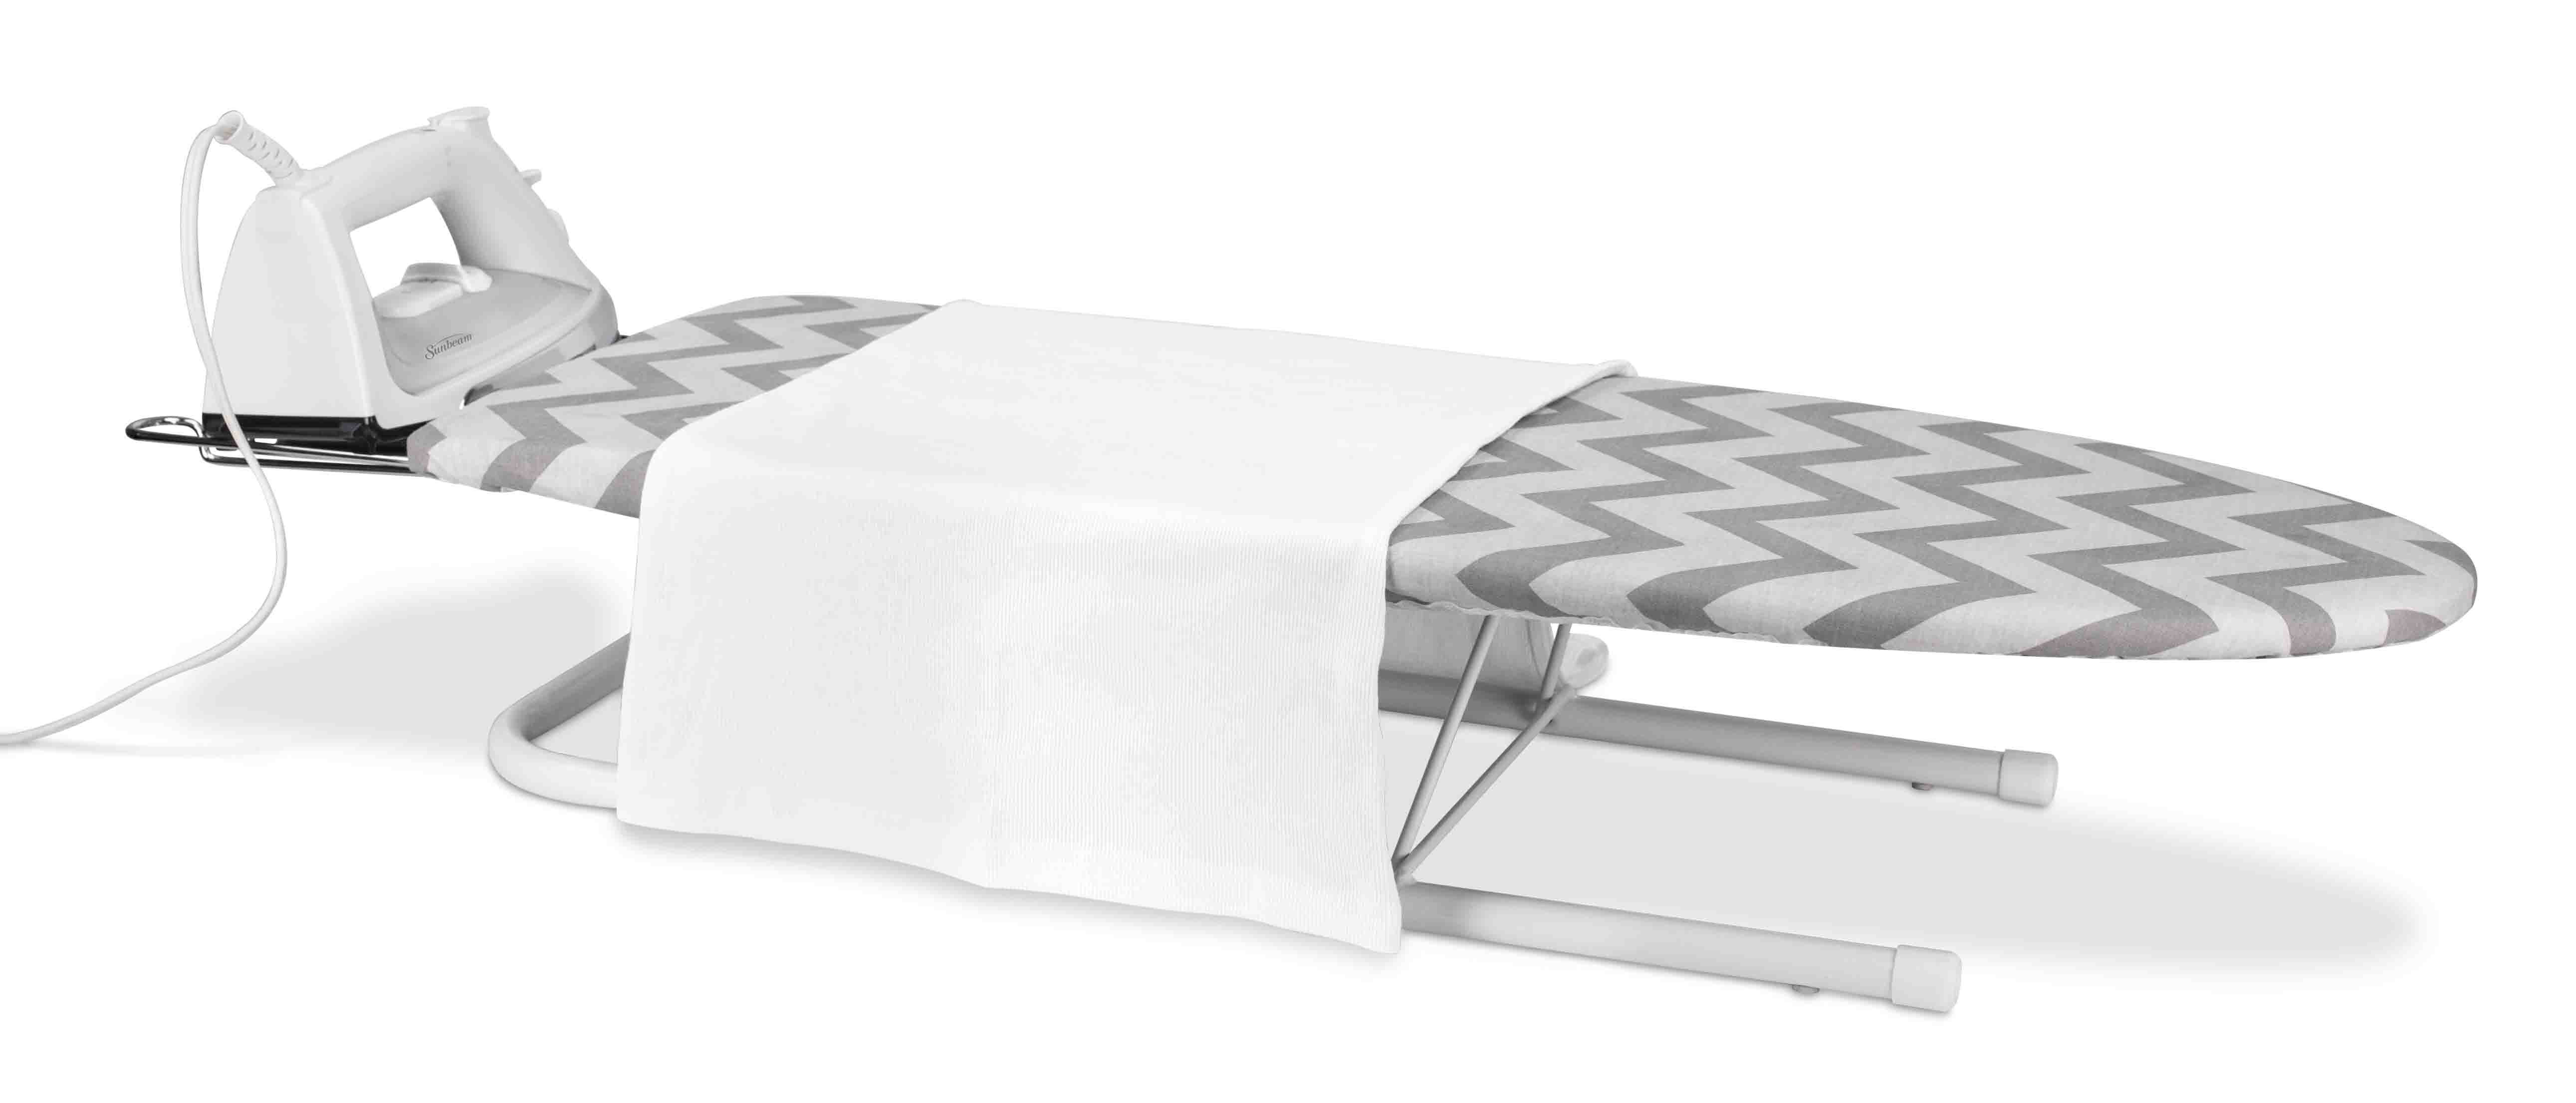 Sunbeam Tabletop Ironing Board With Rest And Cover Walmart Com Walmart Com